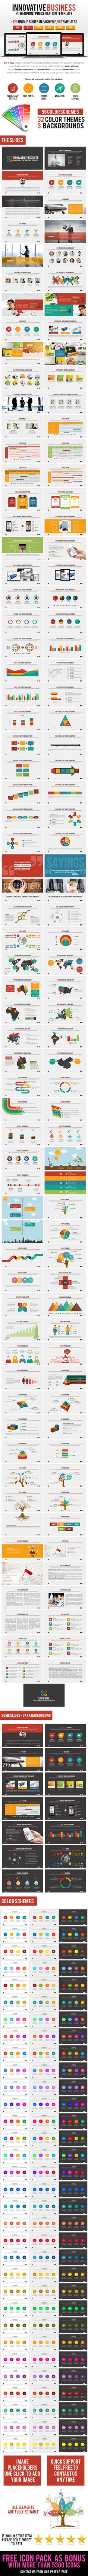 Innovative Business PowerPoint Presentation Template #design Download: http://graphicriver.net/item/innovative-business-powerpoint-presentation/12092867?ref=ksioks